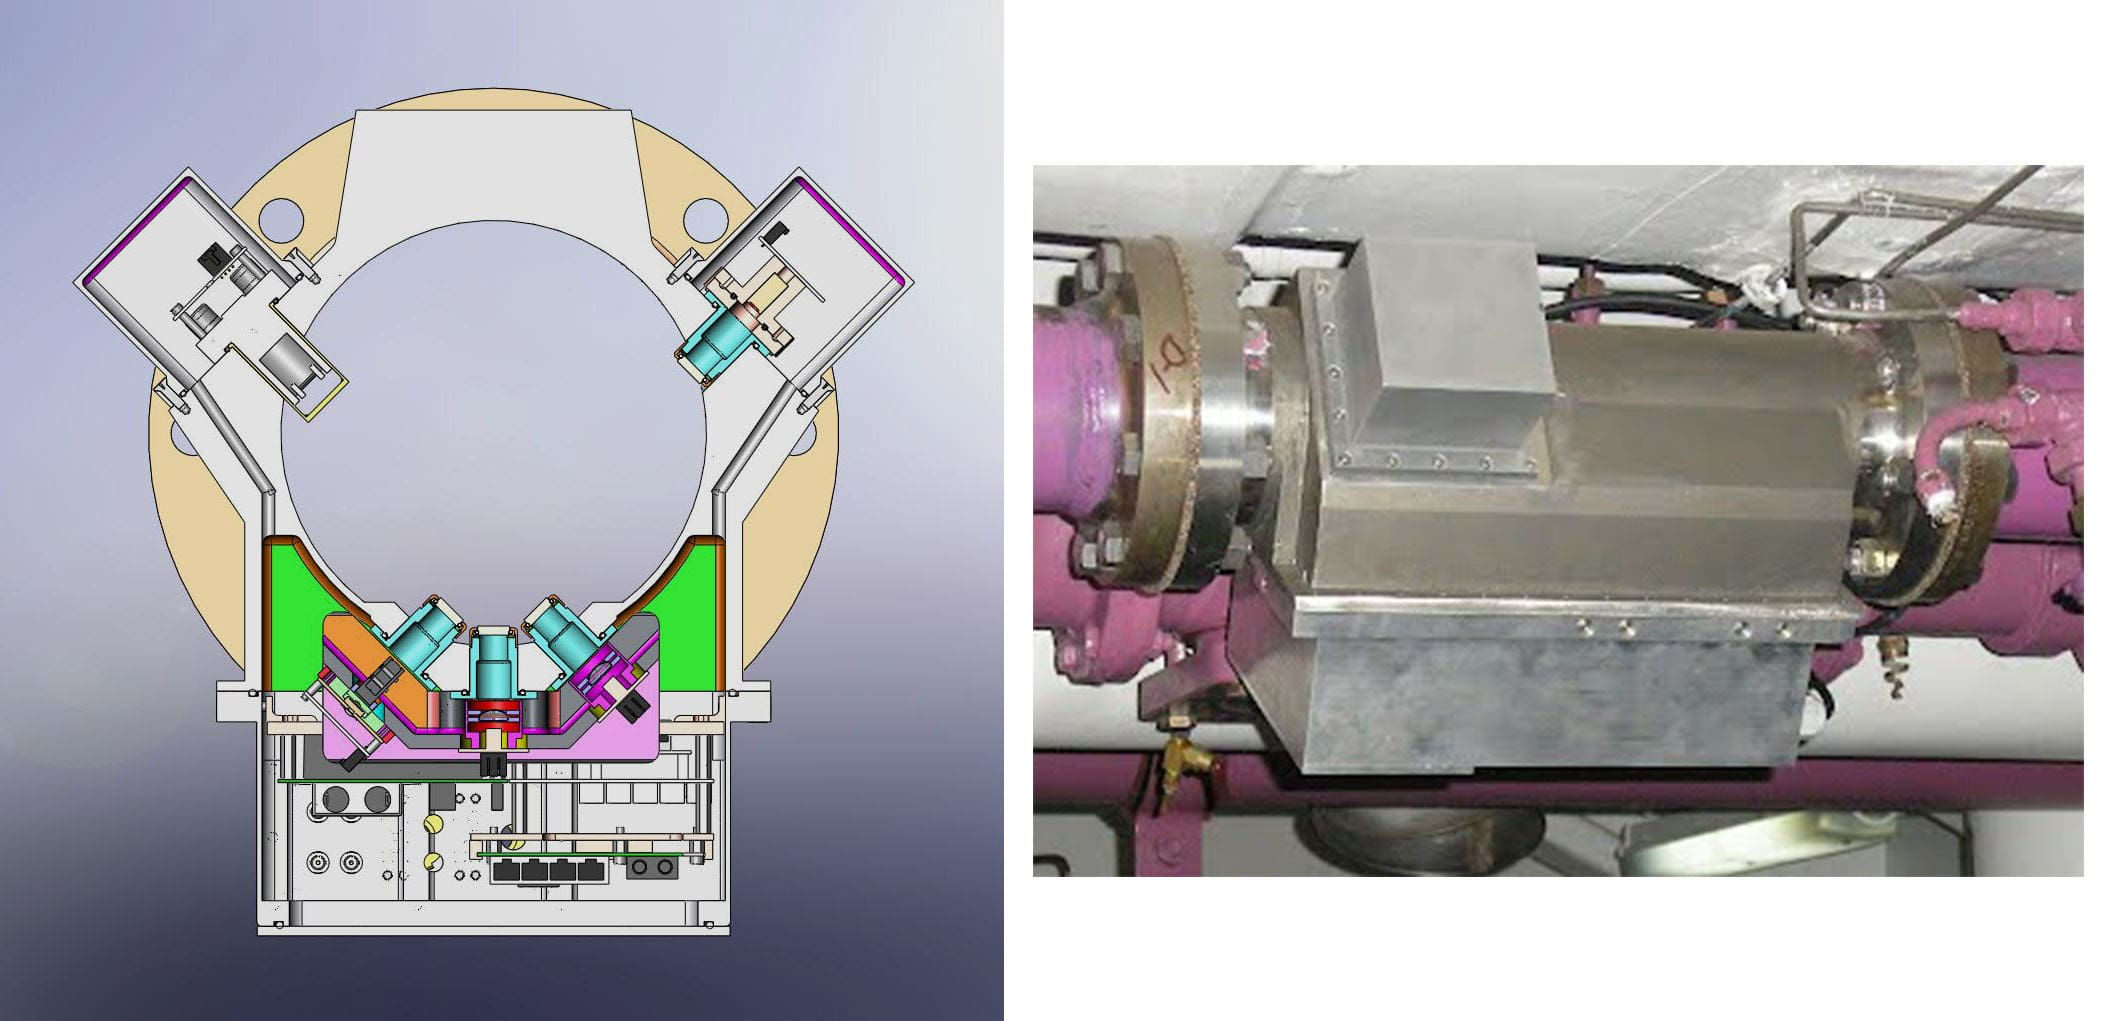 Two images that show how an autogrape works. One image is a sketch and the other is real.